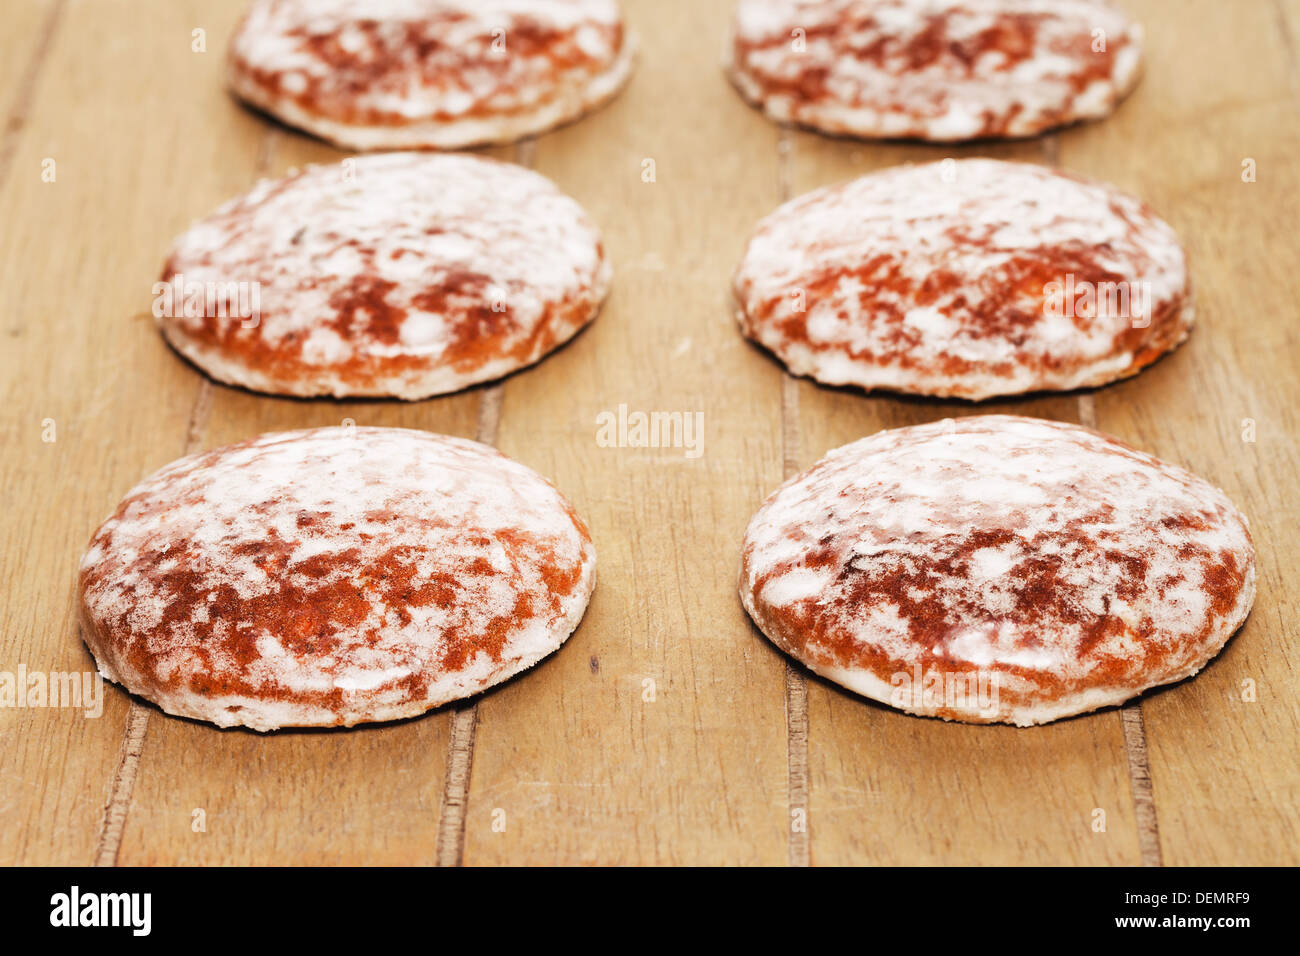 Traditional German Lebkuchen Gingerbread Cookies With Sugar Icing On